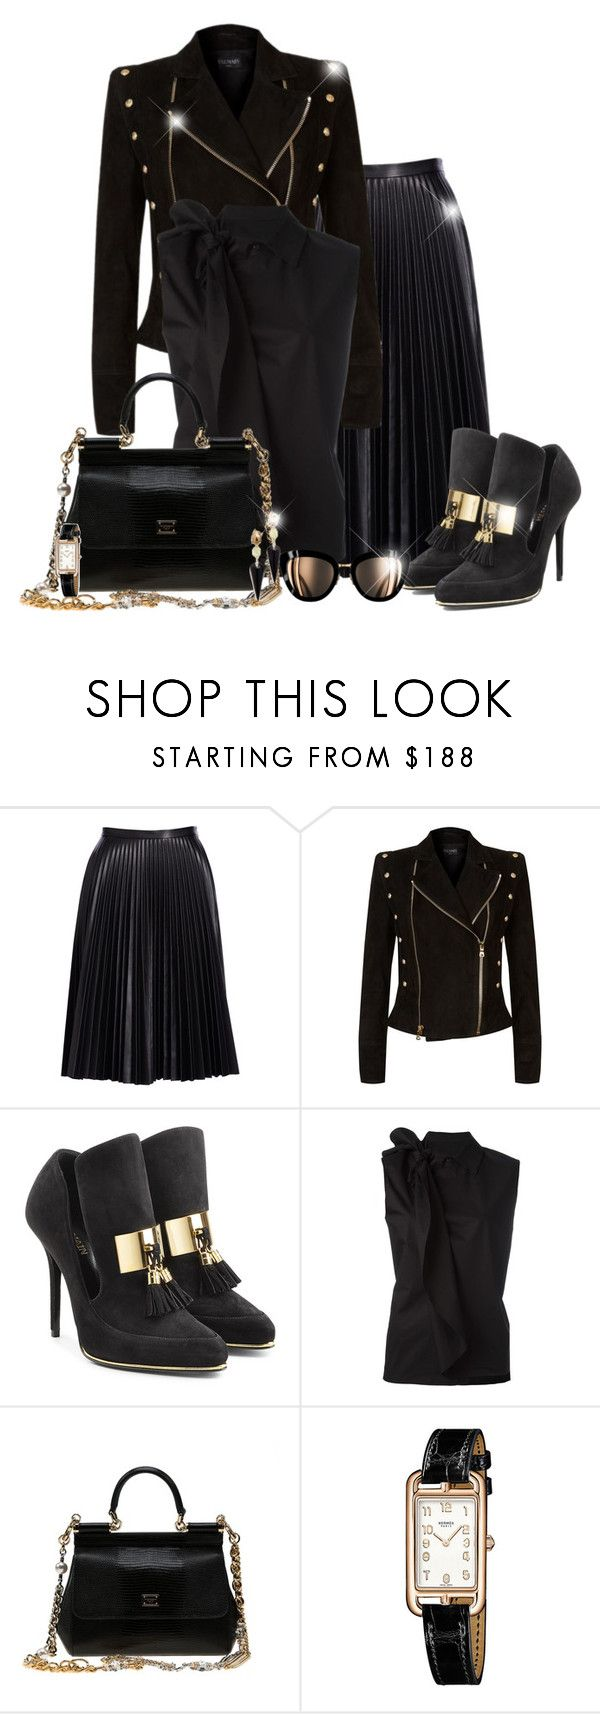 """""""All black"""" by asia-12 ❤ liked on Polyvore featuring Cusp by Neiman Marcus, Balmain, MM6 Maison Margiela, Dolce&Gabbana, Hermès and Alexis Bittar"""